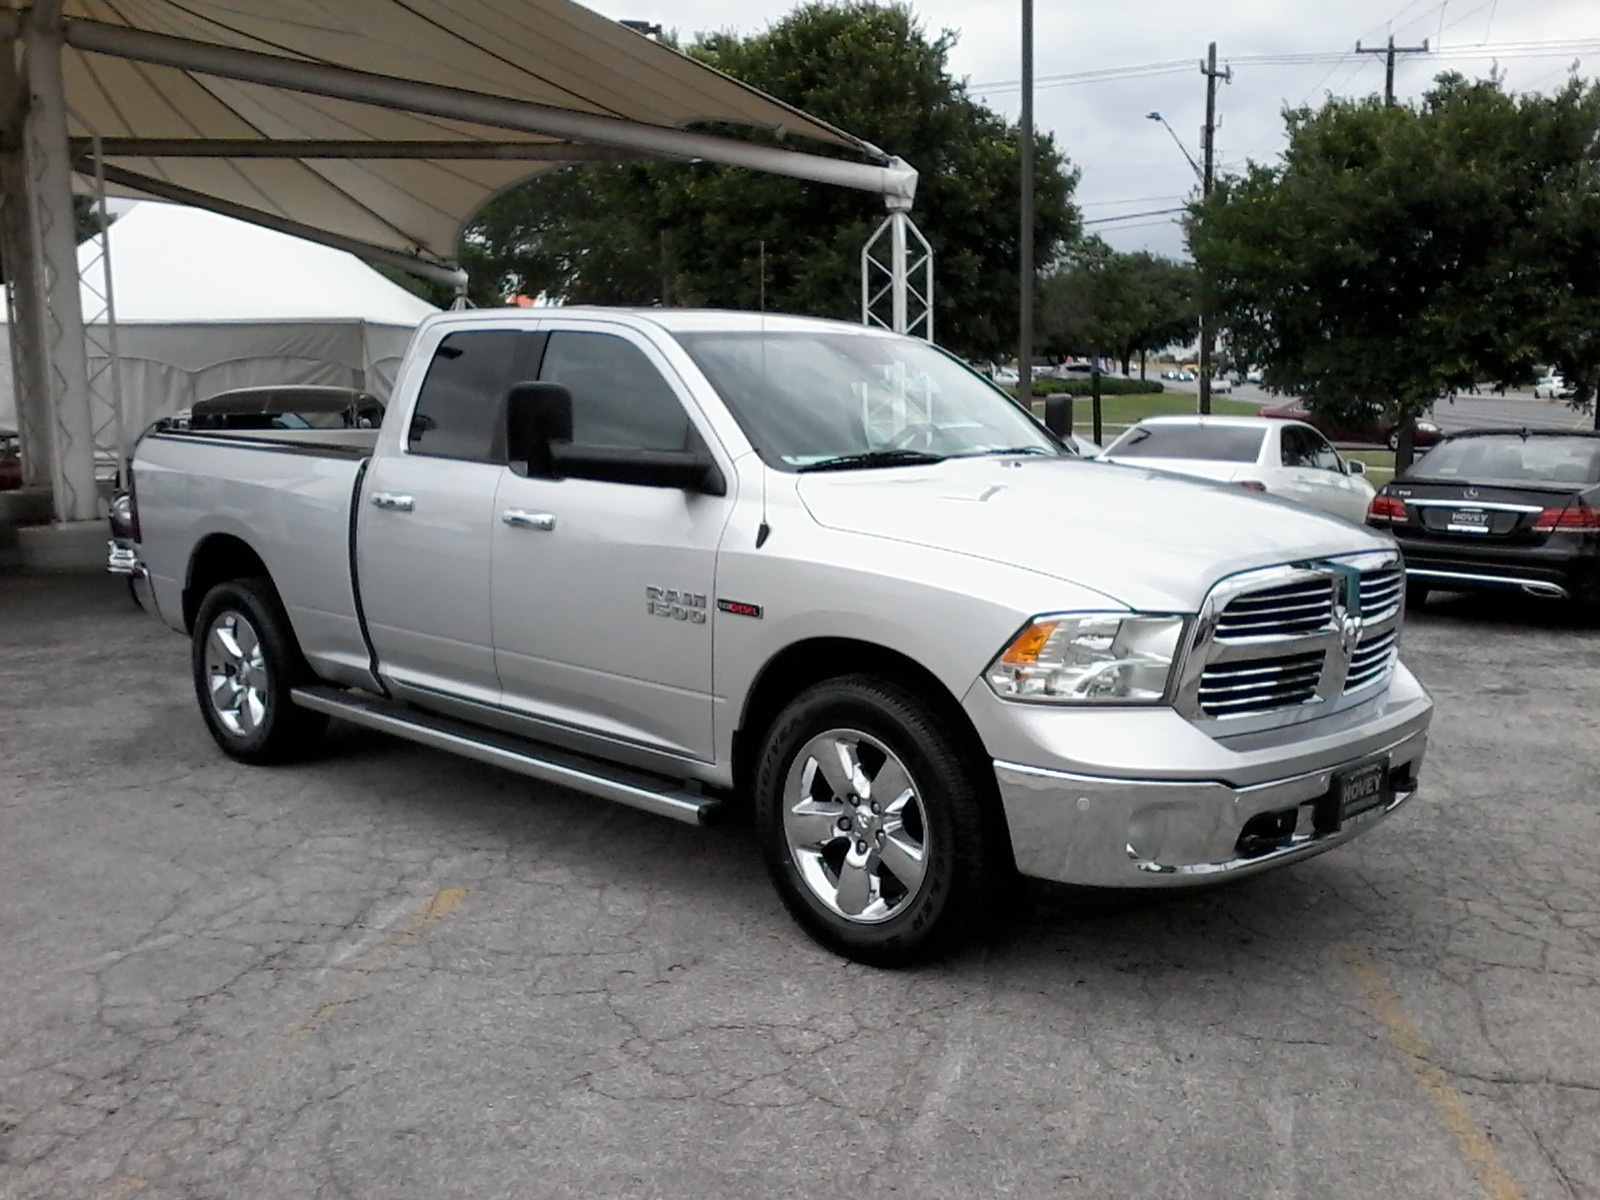 Ram 1500 4x4 Eco Diesel Navigation This Is A Hard To